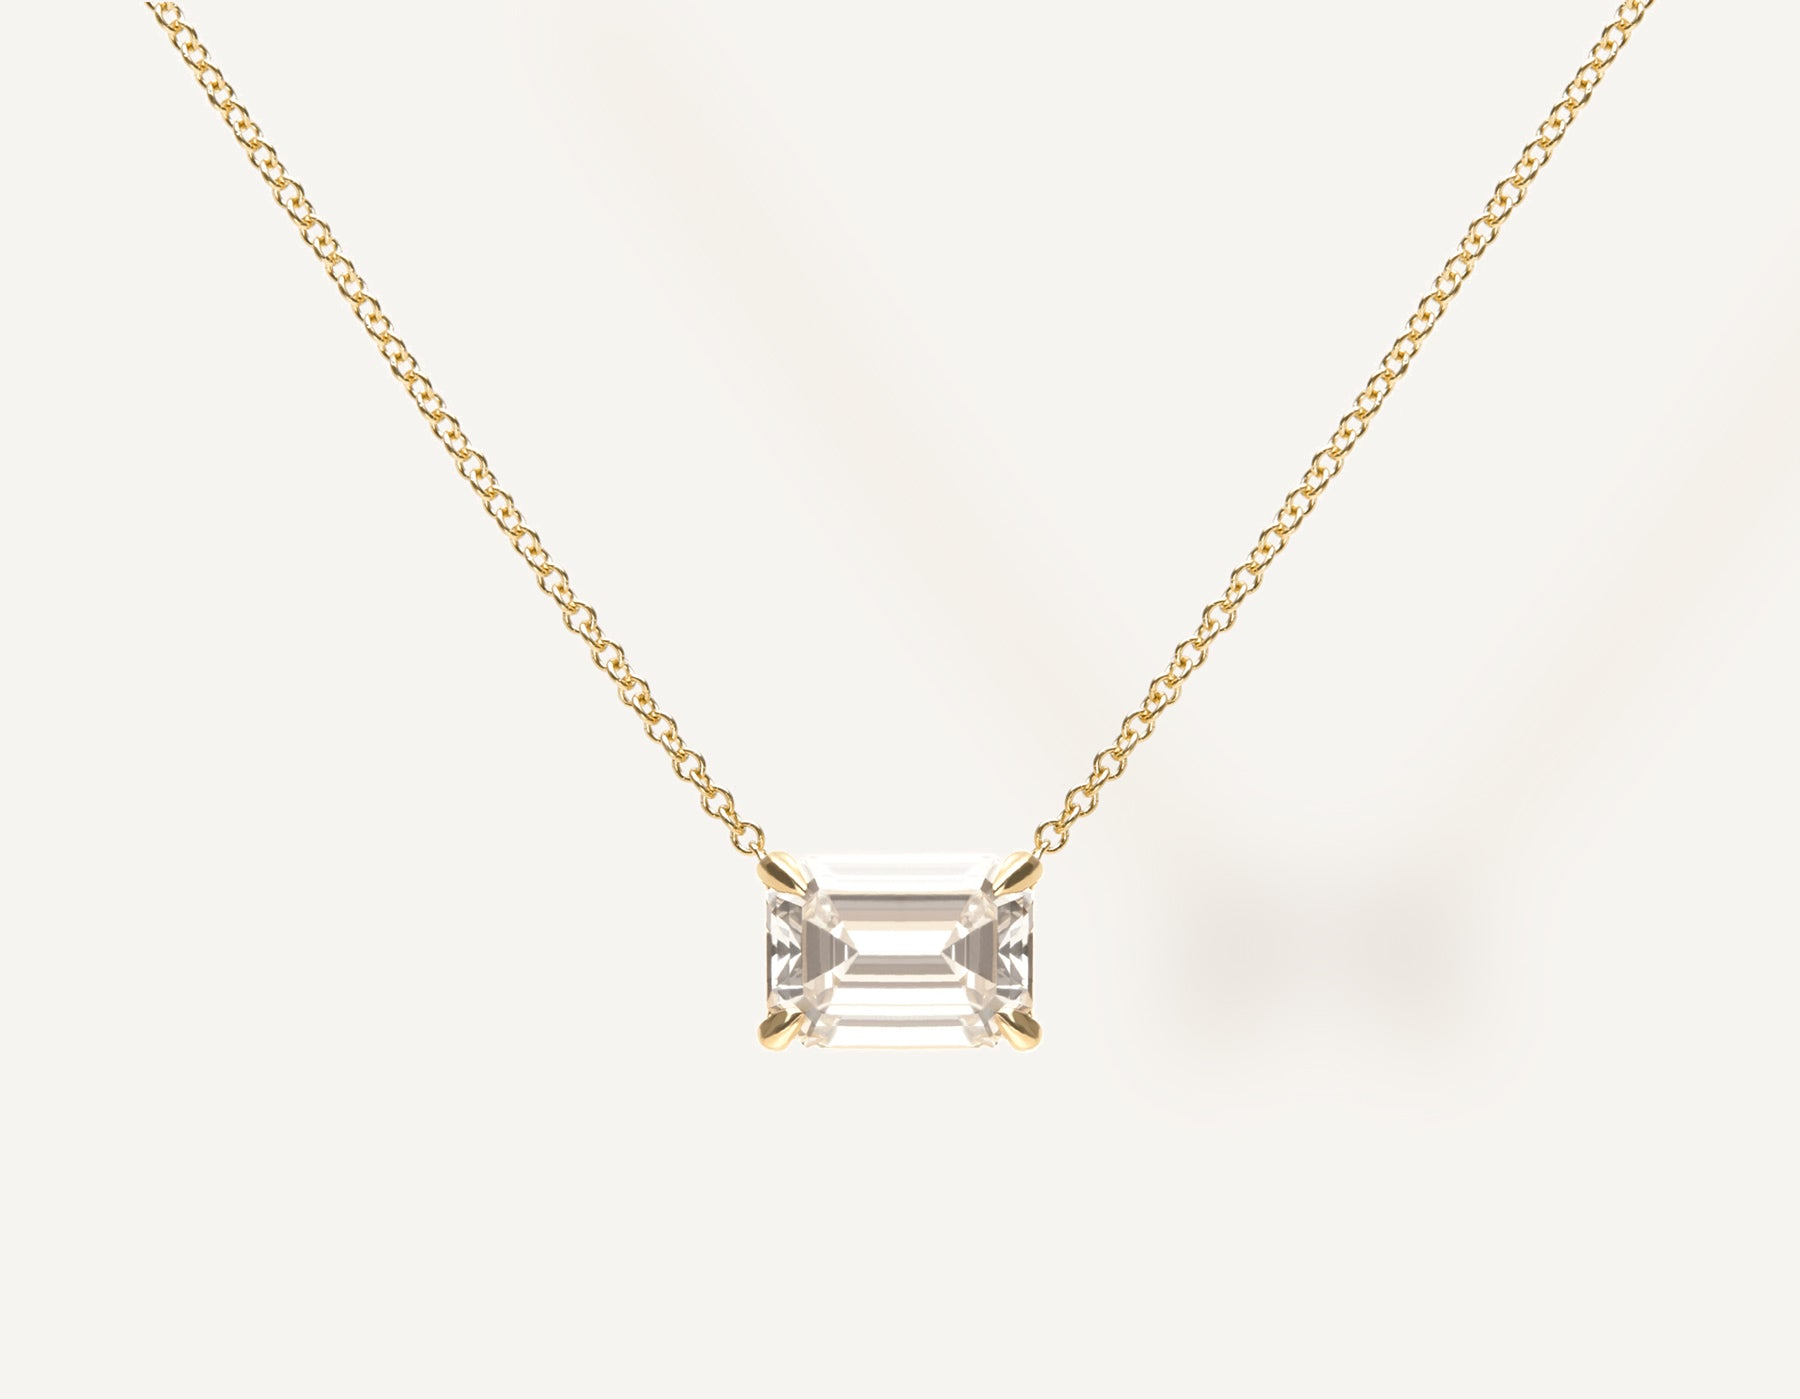 Simple modern 18k solid gold 1.0 ct Emerald Diamond Necklace on thin chain with lobster clasp Vrai and Oro, 18K Yellow Gold